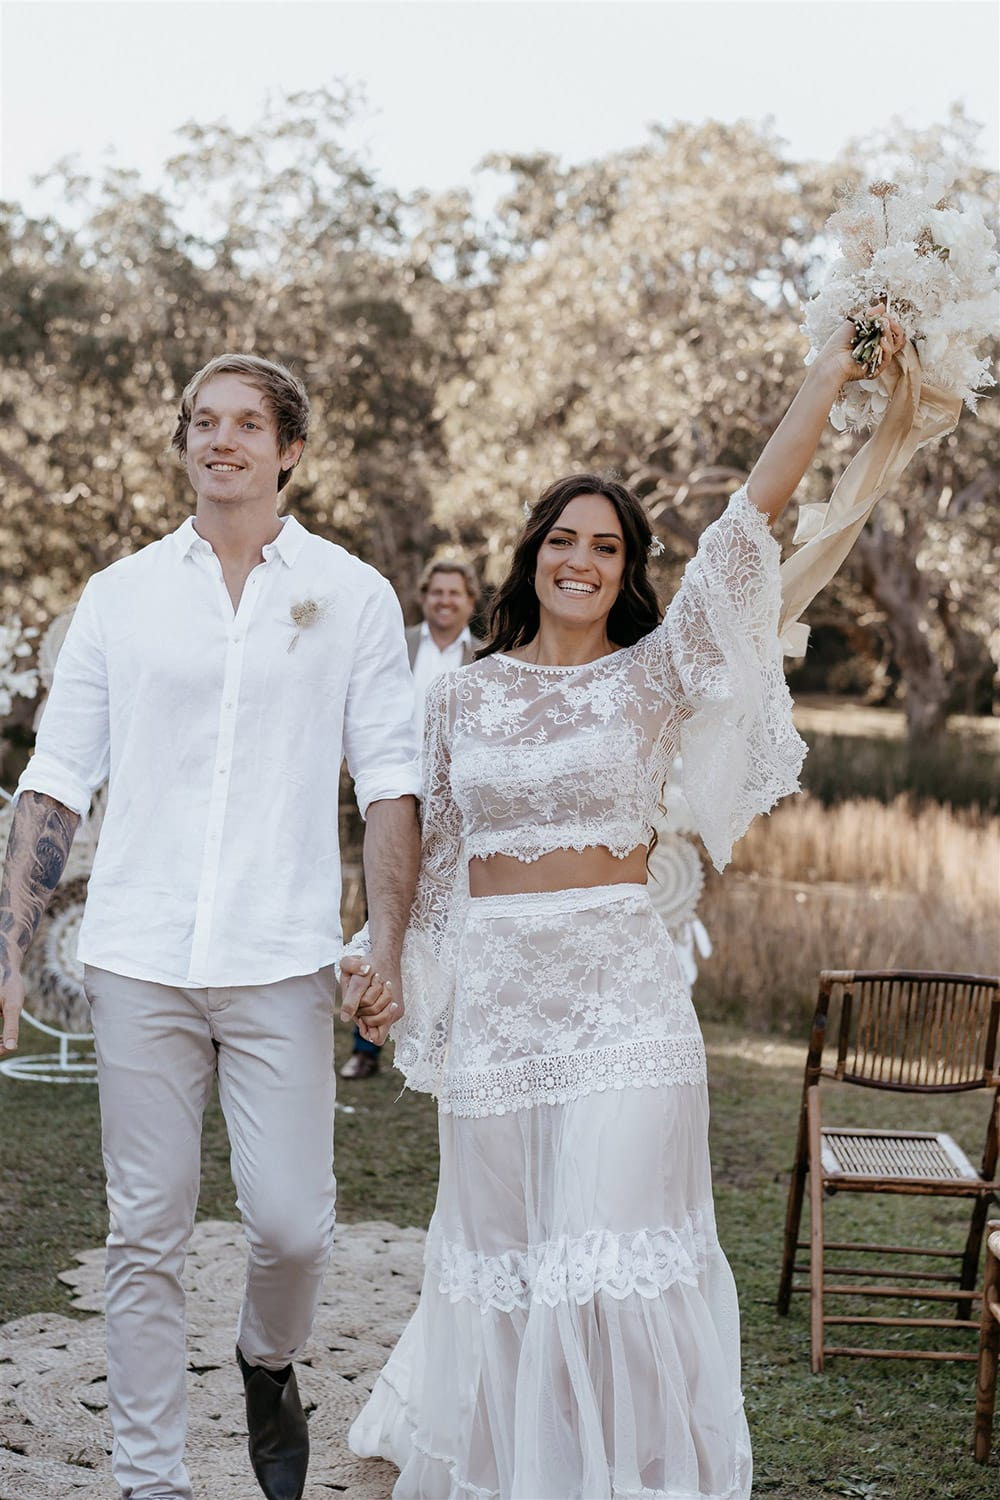 Outdoor Festival Bohemian Wedding Inspiration   The bride wears a white two piece lace boho wedding dress with a long sleeved cropped bodice and tiered maxi skirt. Her hair is worn in a romantic half up half down style with loose waves and a cascading fresh floral hairpiece. The groom wears an untucked white linen shirt with the sleeves rolled up and collar unbuttoned, light grey chinos and brown boots for a casual wedding day look.   Photography: Shae Estella Photo